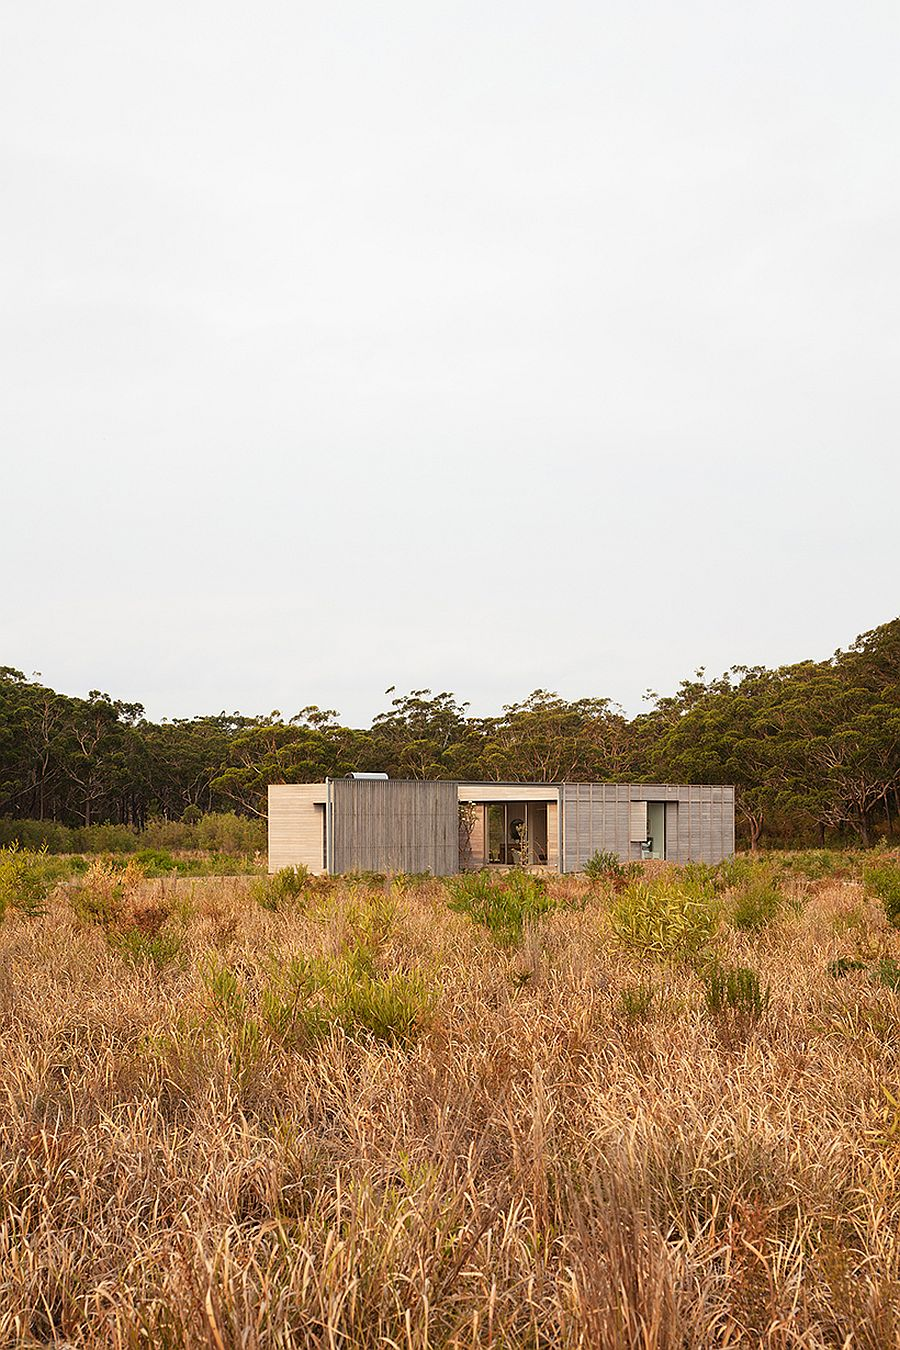 Sustainable-modern-prefab-fits-into-any-natural-setting-without-leaving-a-major-carbon-footprint-75590